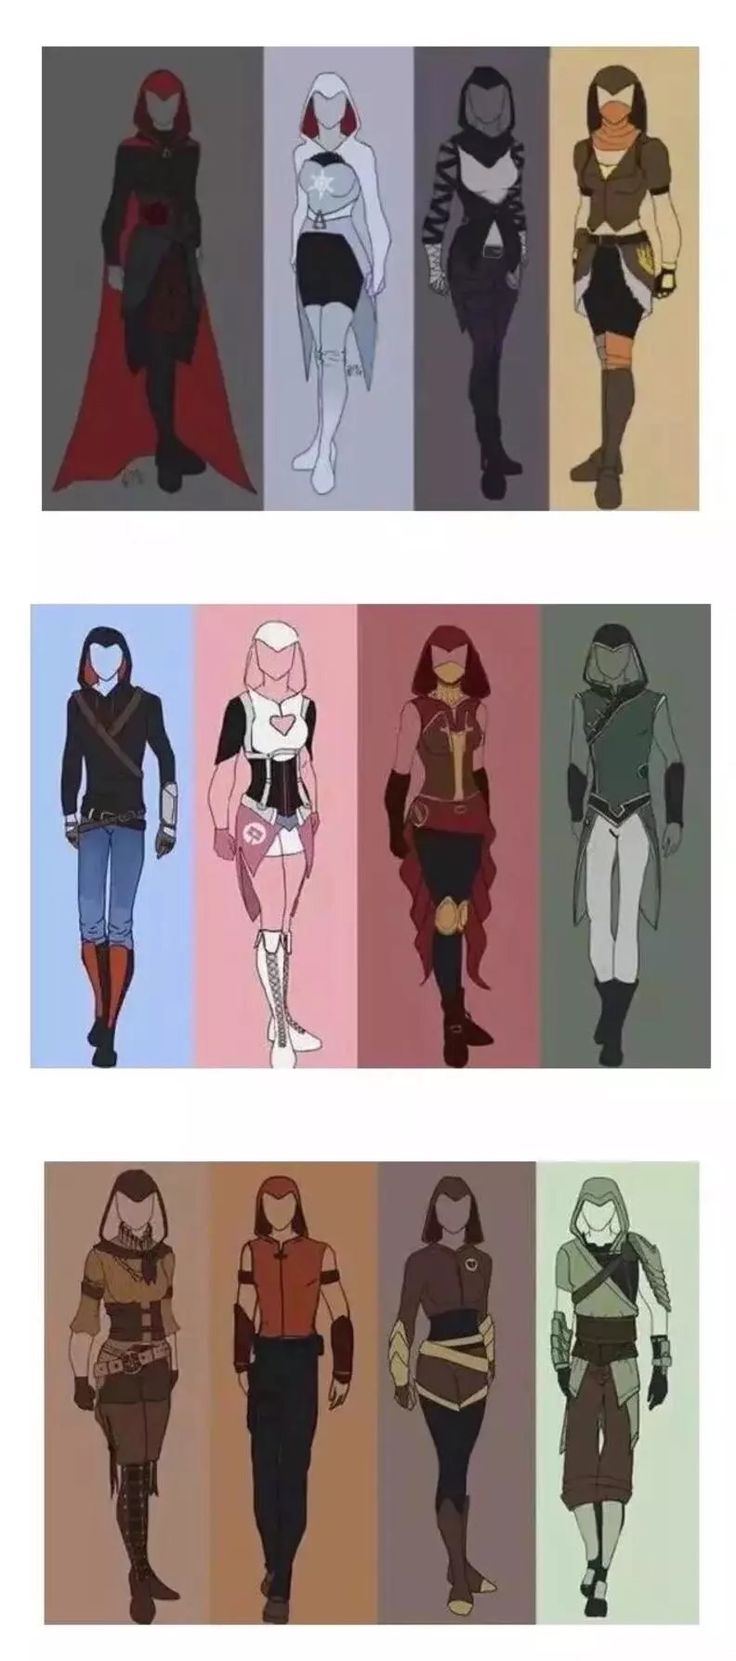 RWBY assassin's creed style